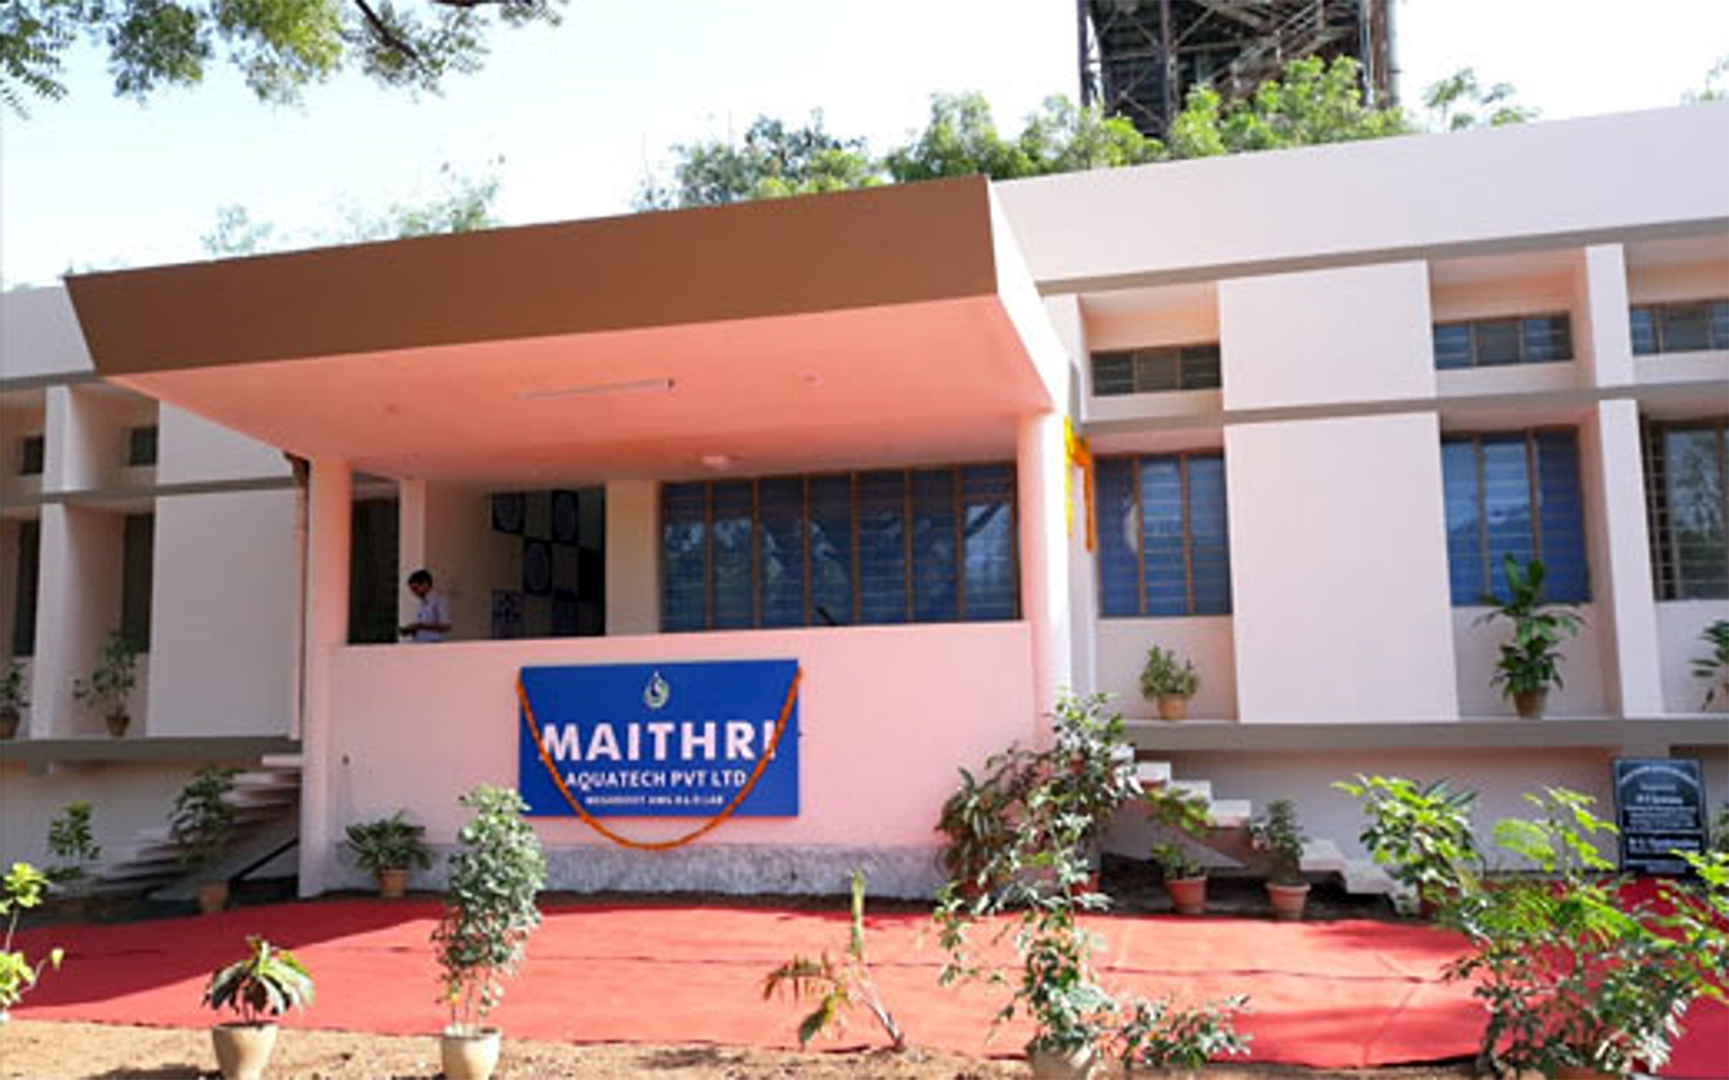 Maithri Aquatech inaugurates its first Research and Development Labaratory in Hyderabad.